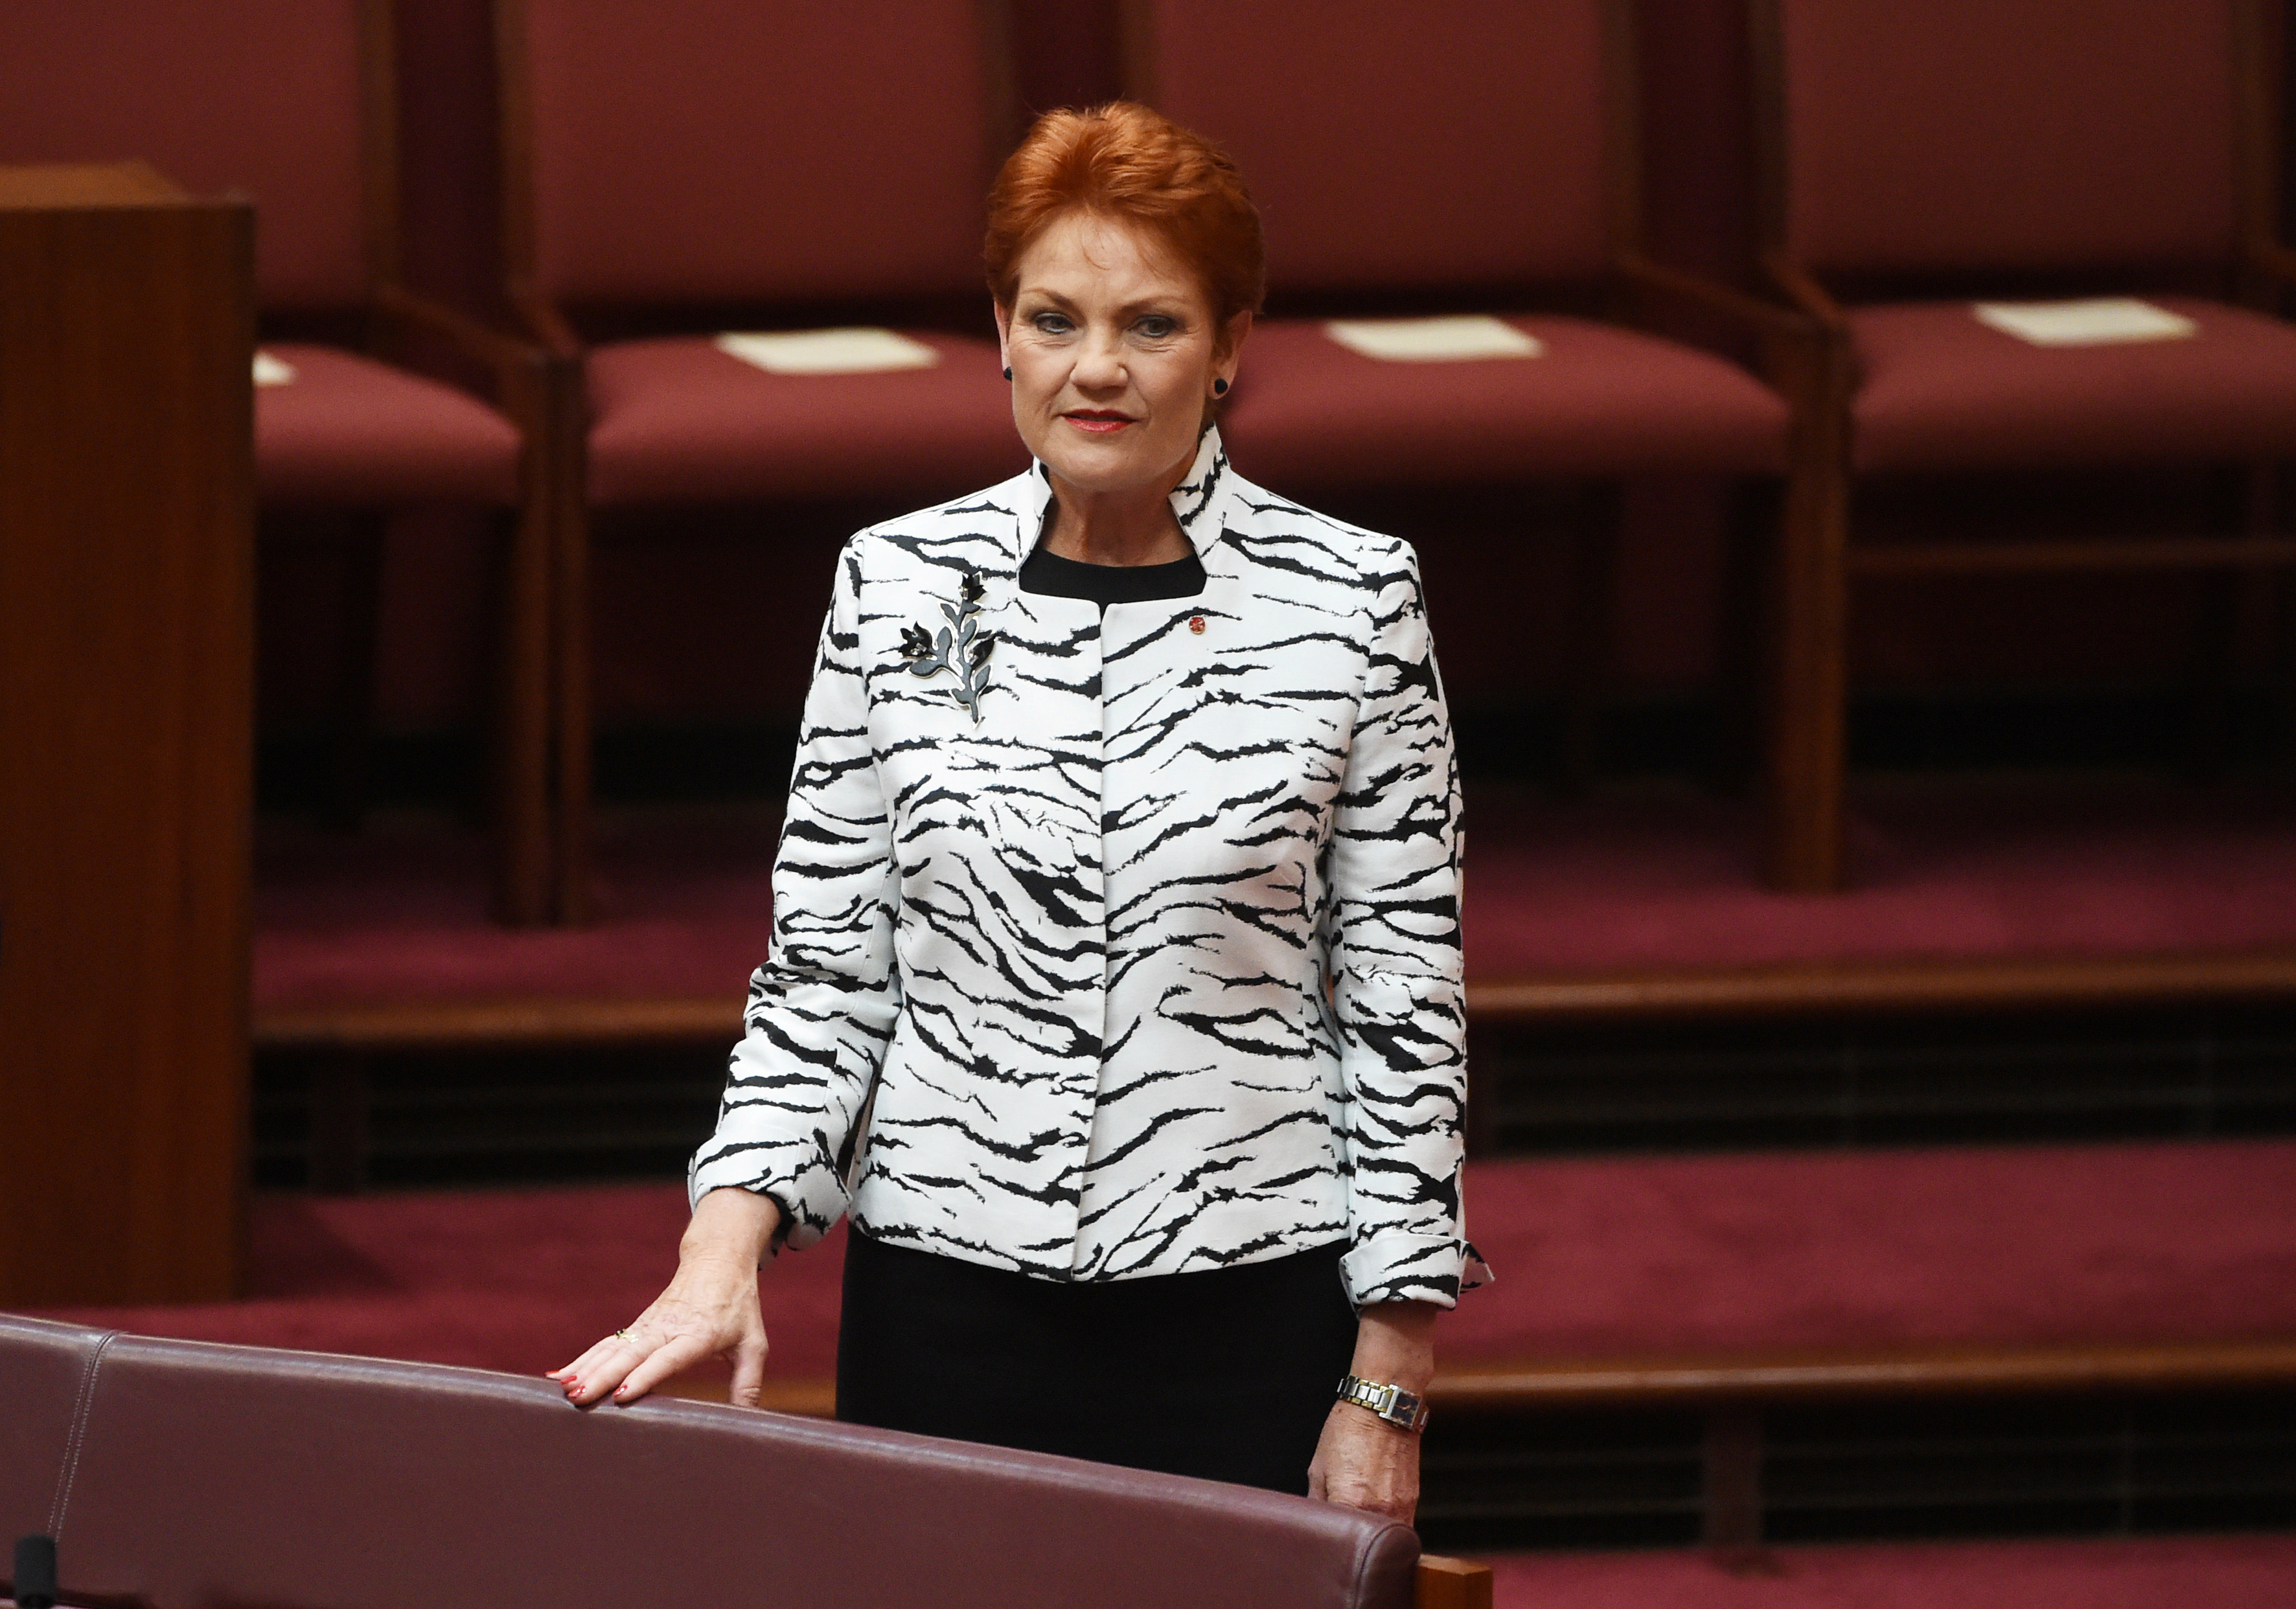 Australia's One Nation party Senator Pauline Hanson is pictured in the Senate chamber on the opening day of the new parliamentary session in Canberra, on Aug. 30, 2016